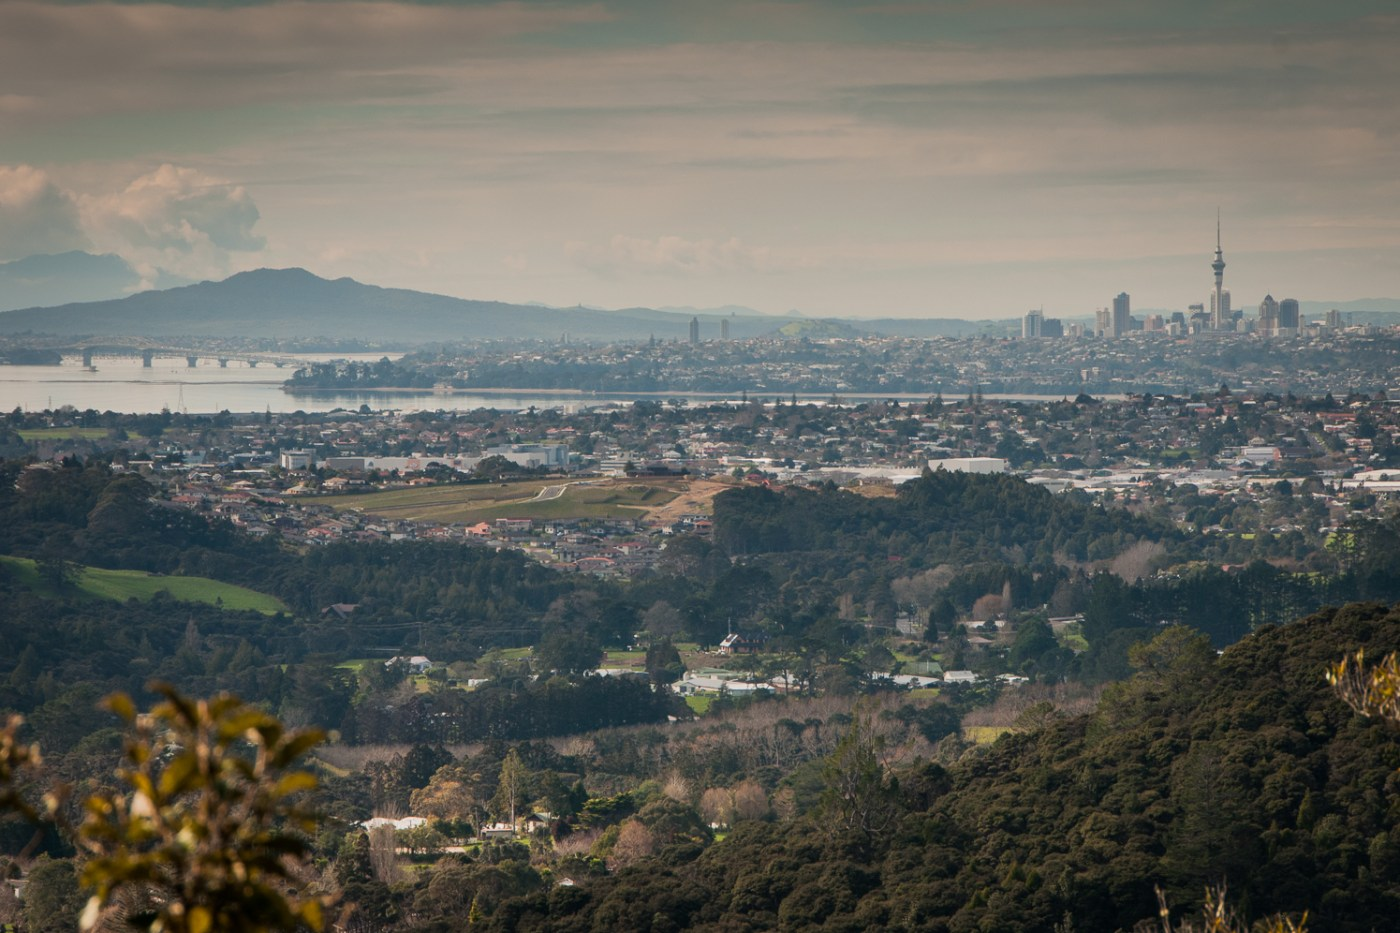 Auckland from Waitakere Ranges